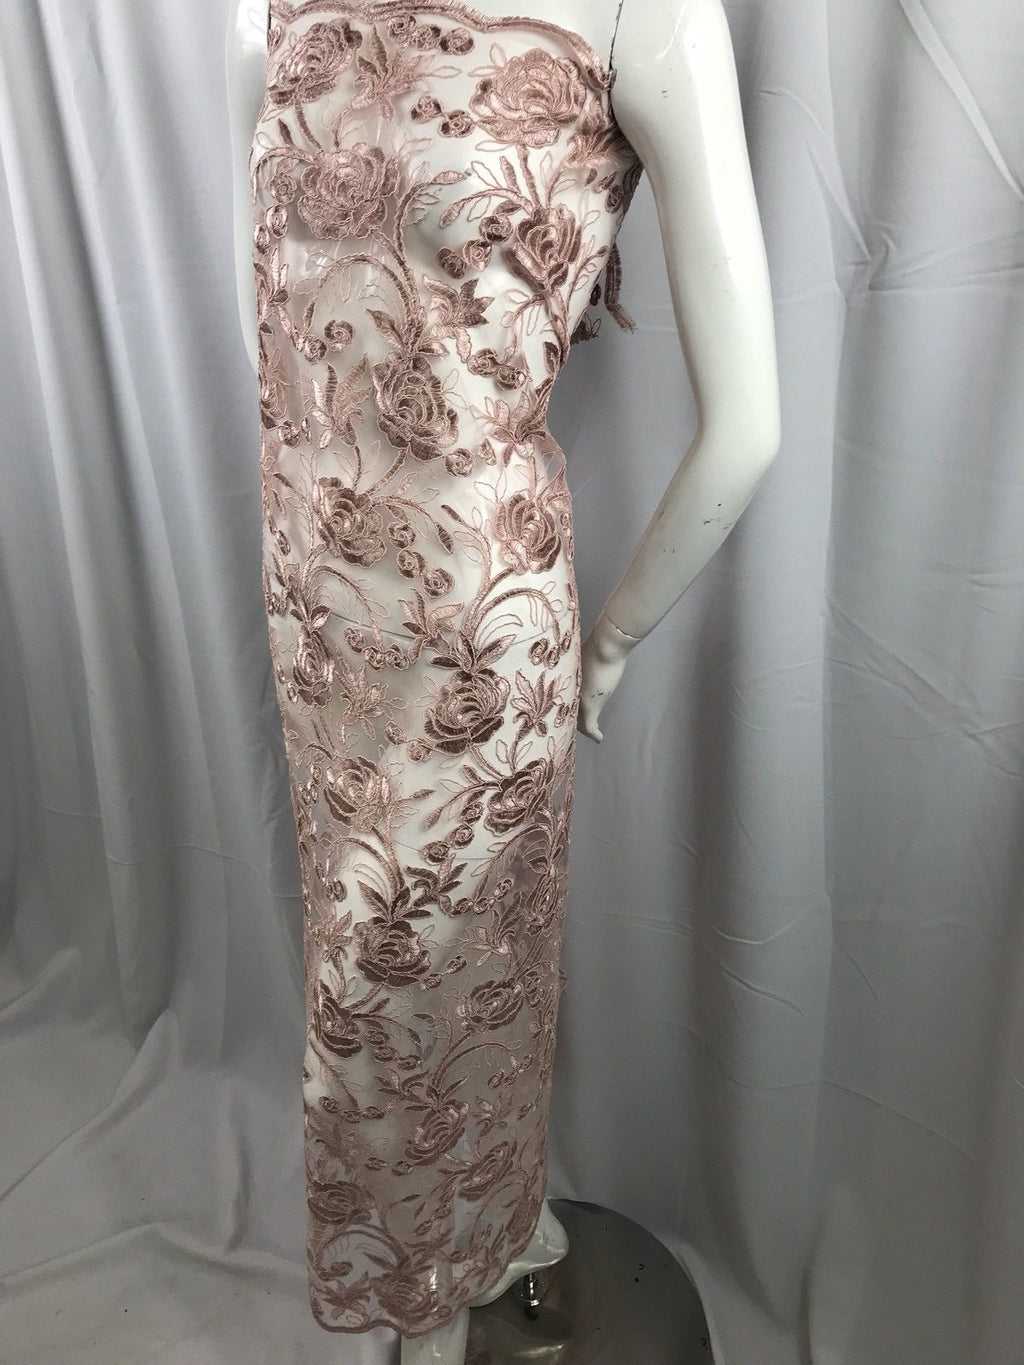 Vegas Design Lace Fabric - Flower Mesh Top Bridal Veil Wedding Dress Dusty Rose By The Yard - KINGDOM OF FABRICS